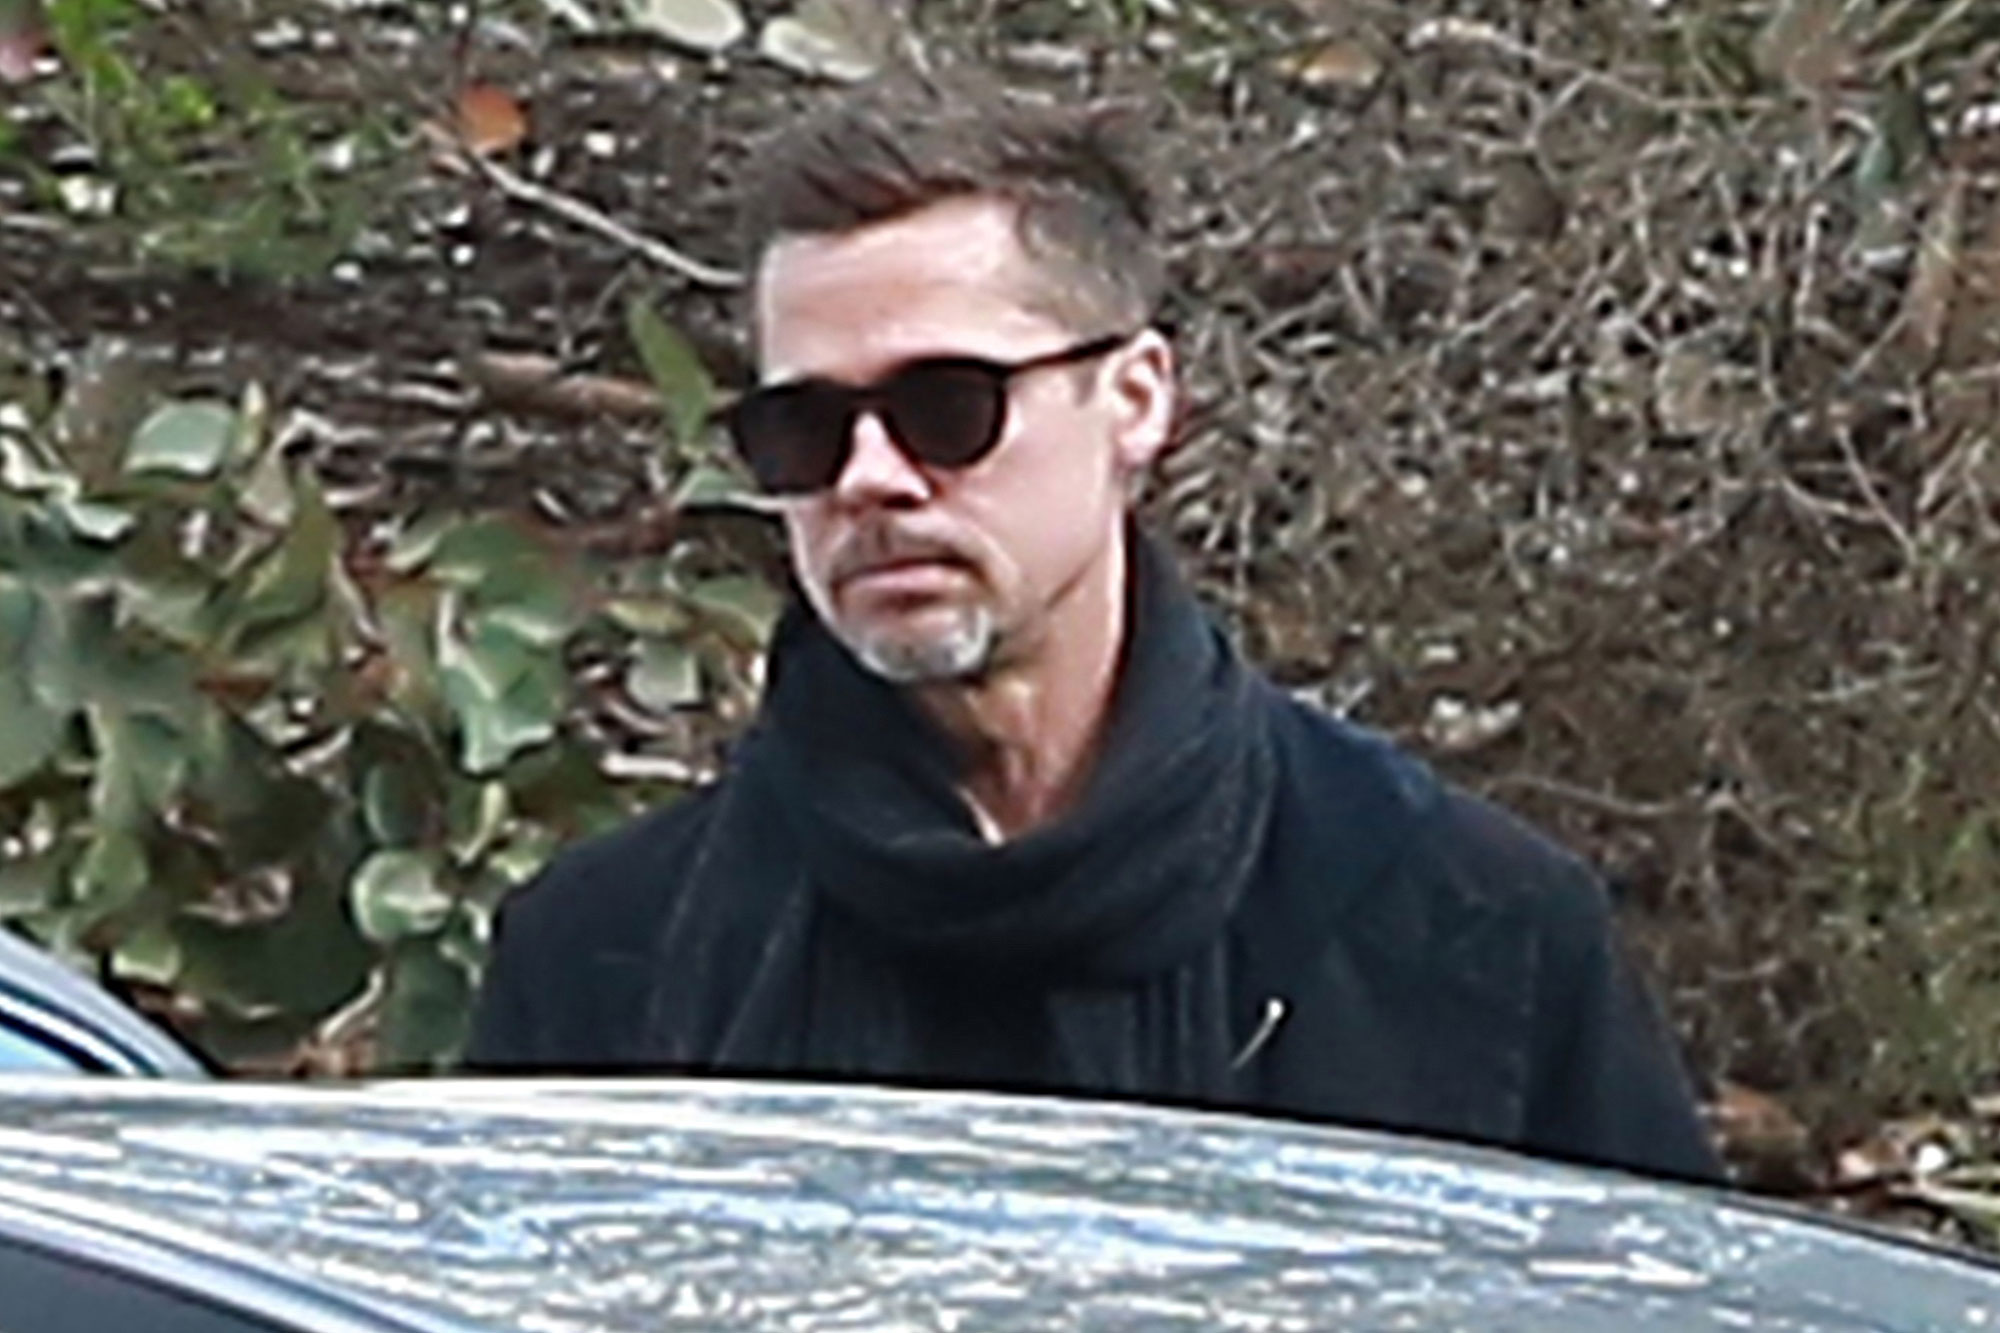 Exclusive... Premium: Brad Pitt Heads Out In Santa Monica ***NO USE W/O PRIOR AGREEMENT - CALL FOR PRICING***